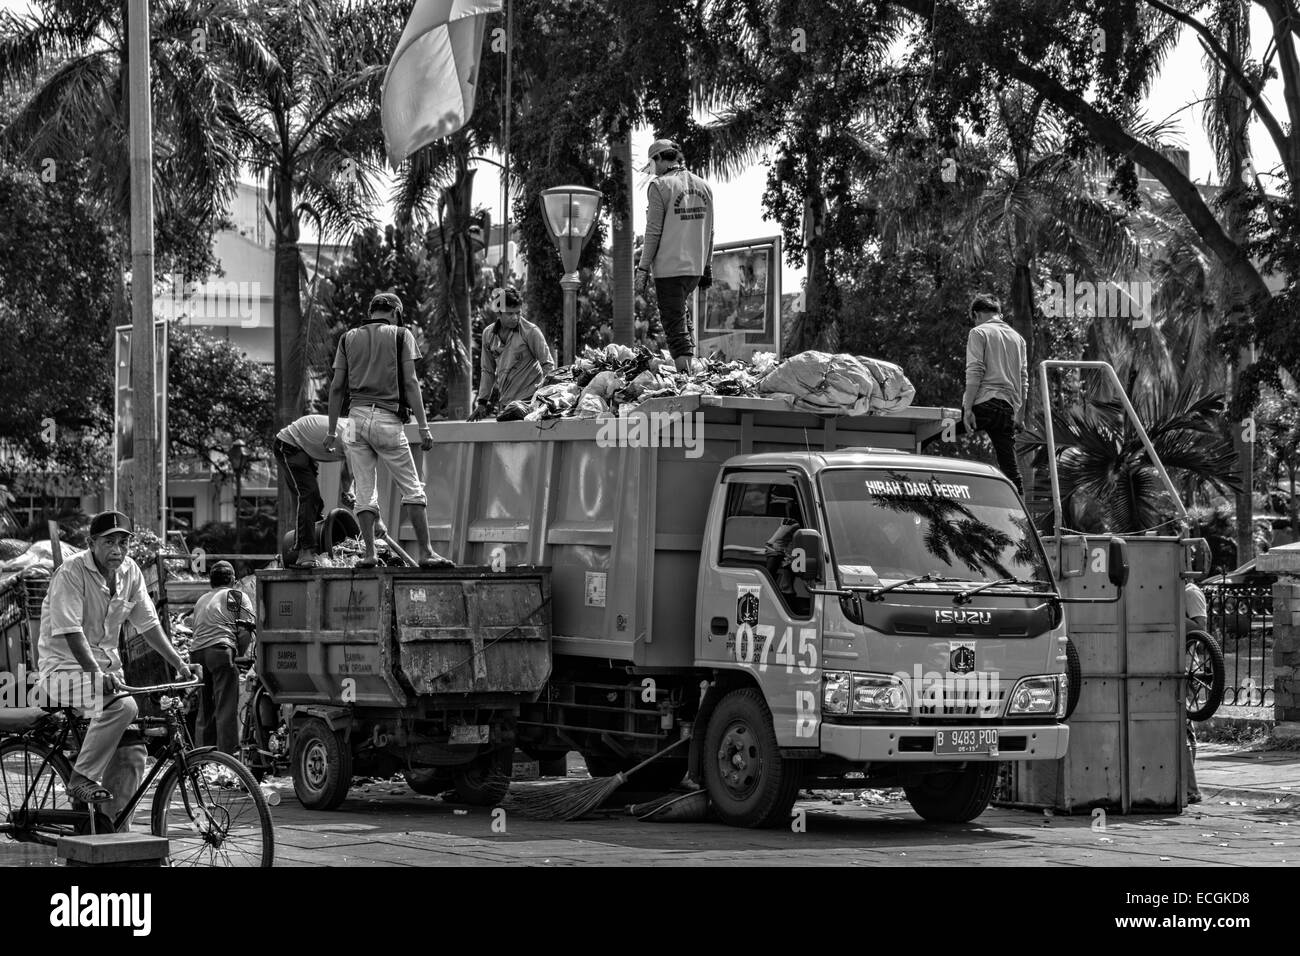 Street cleaners are cleaning up the rubbish that was left behind on Fatahillah Square, Jakarta, Indonesia. - Stock Image